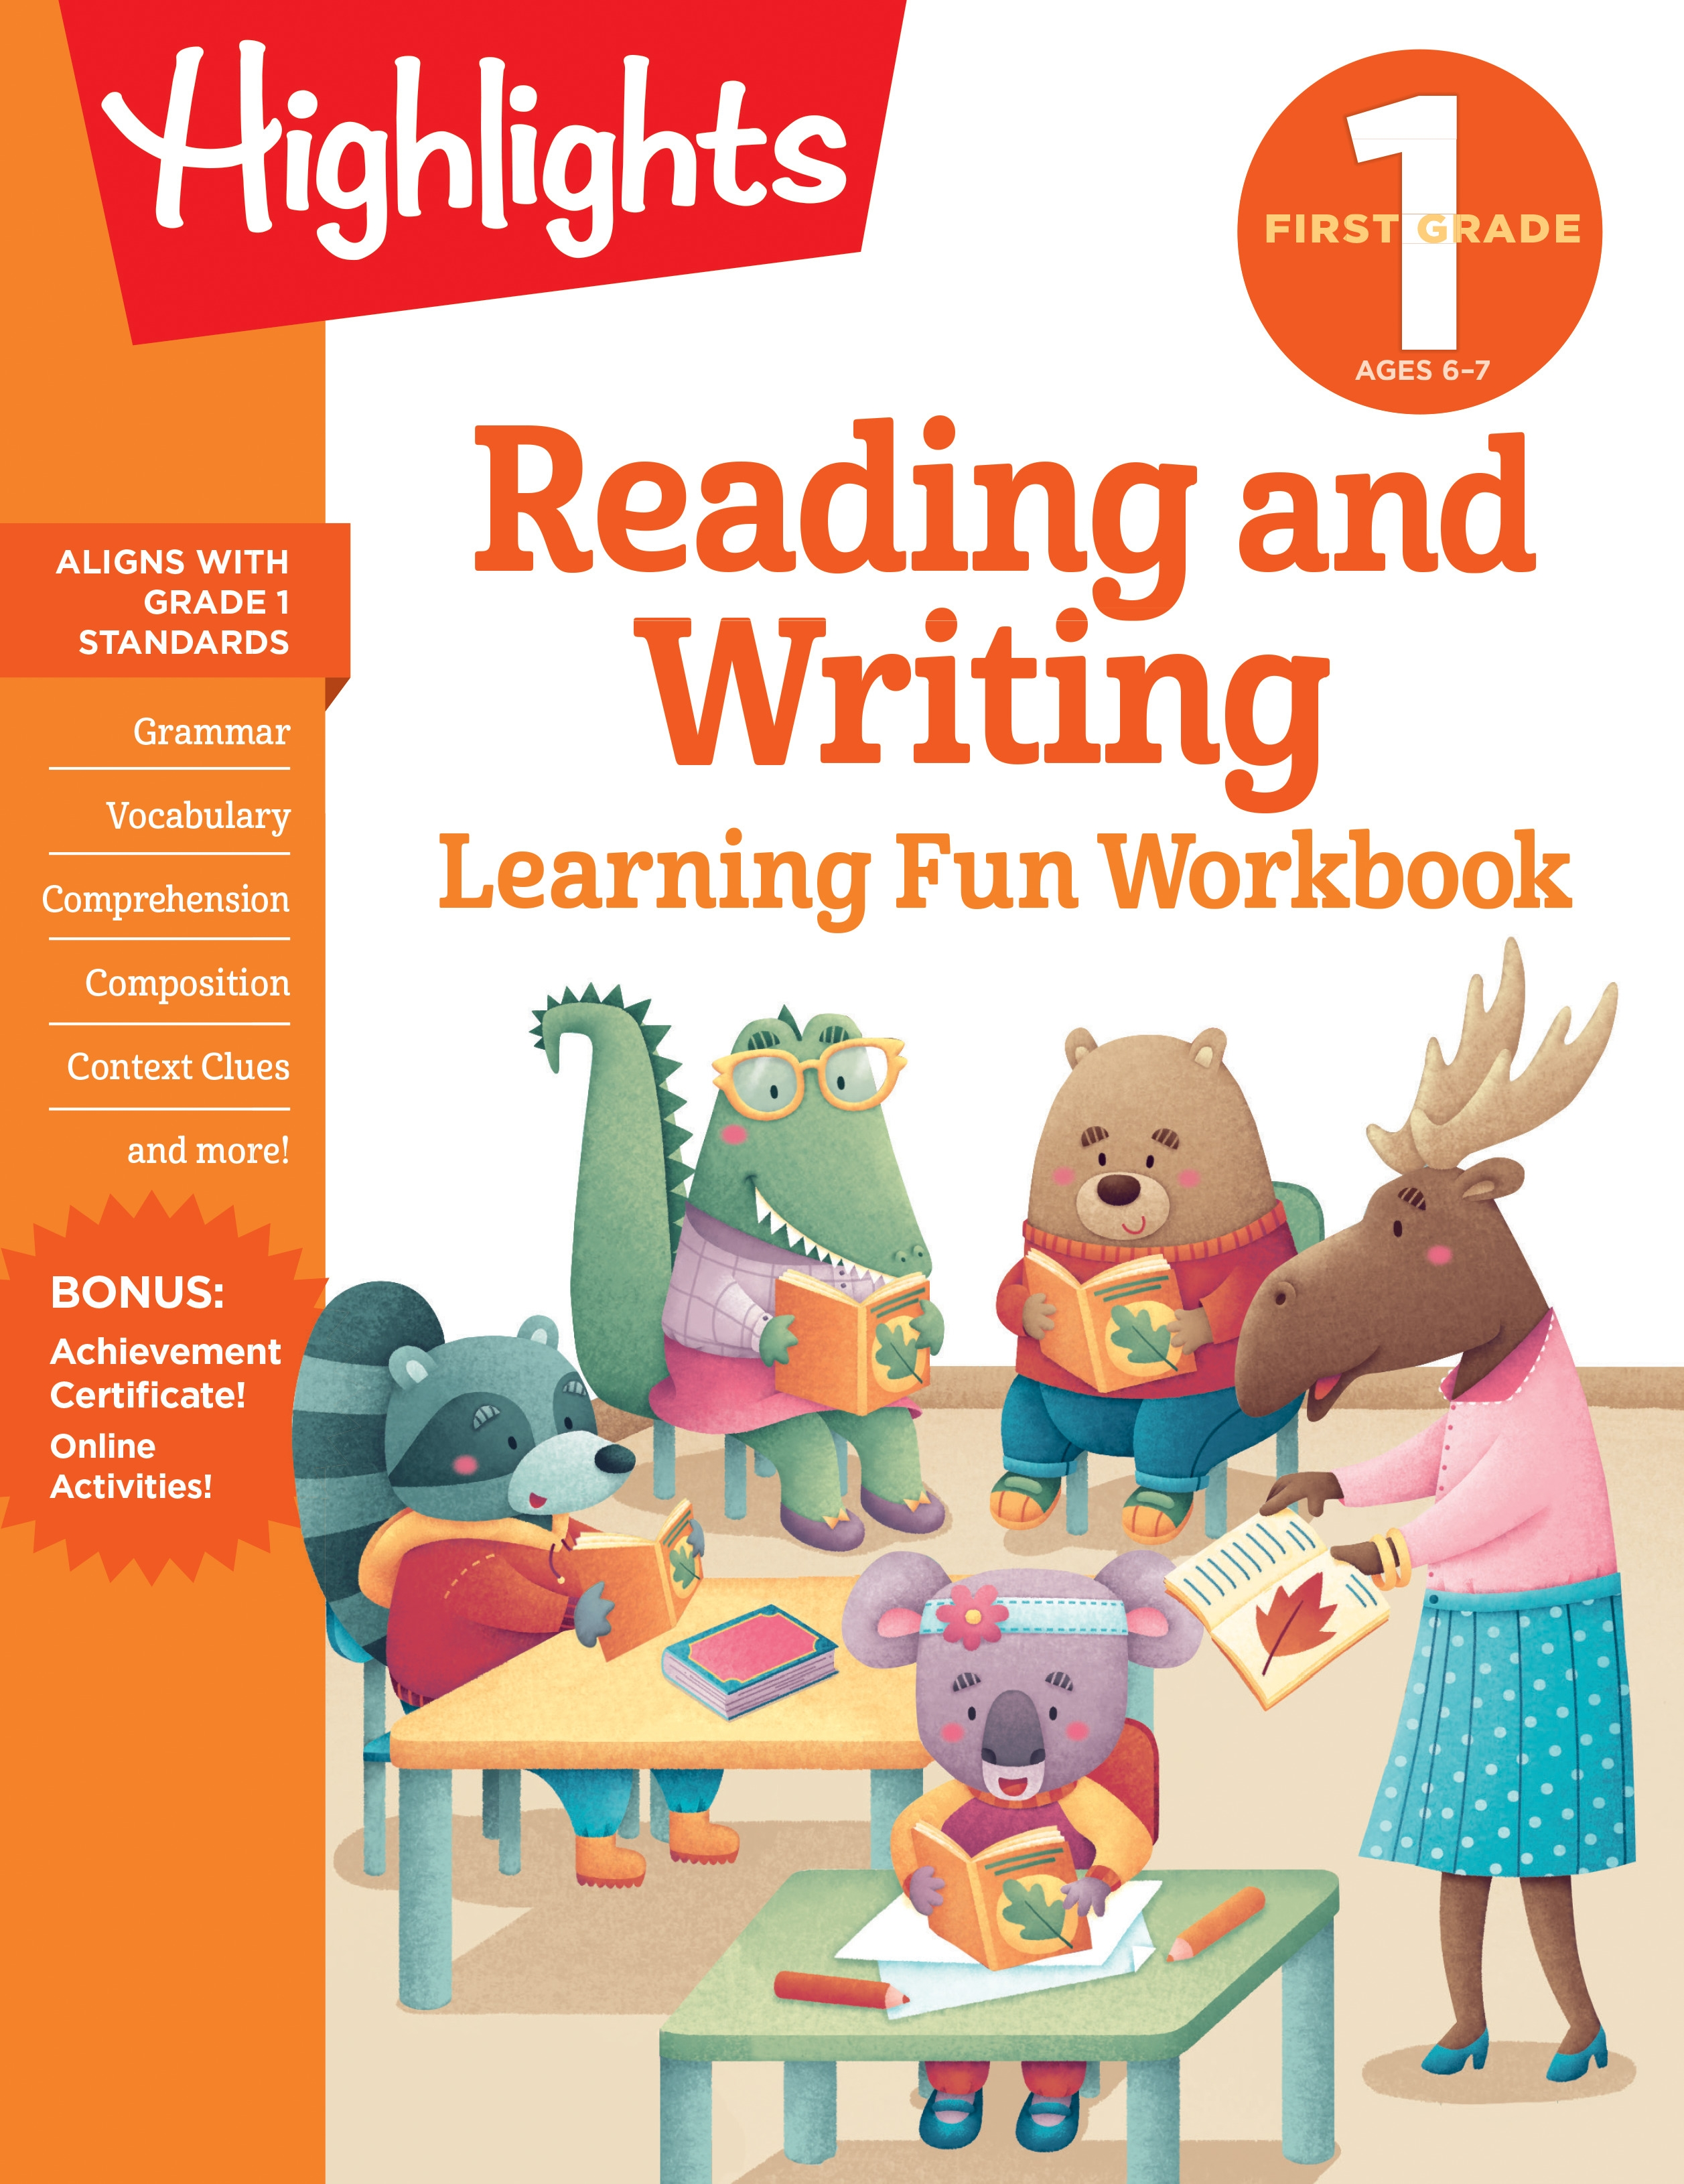 First Grade Reading and Writing by Highlights Learning ...